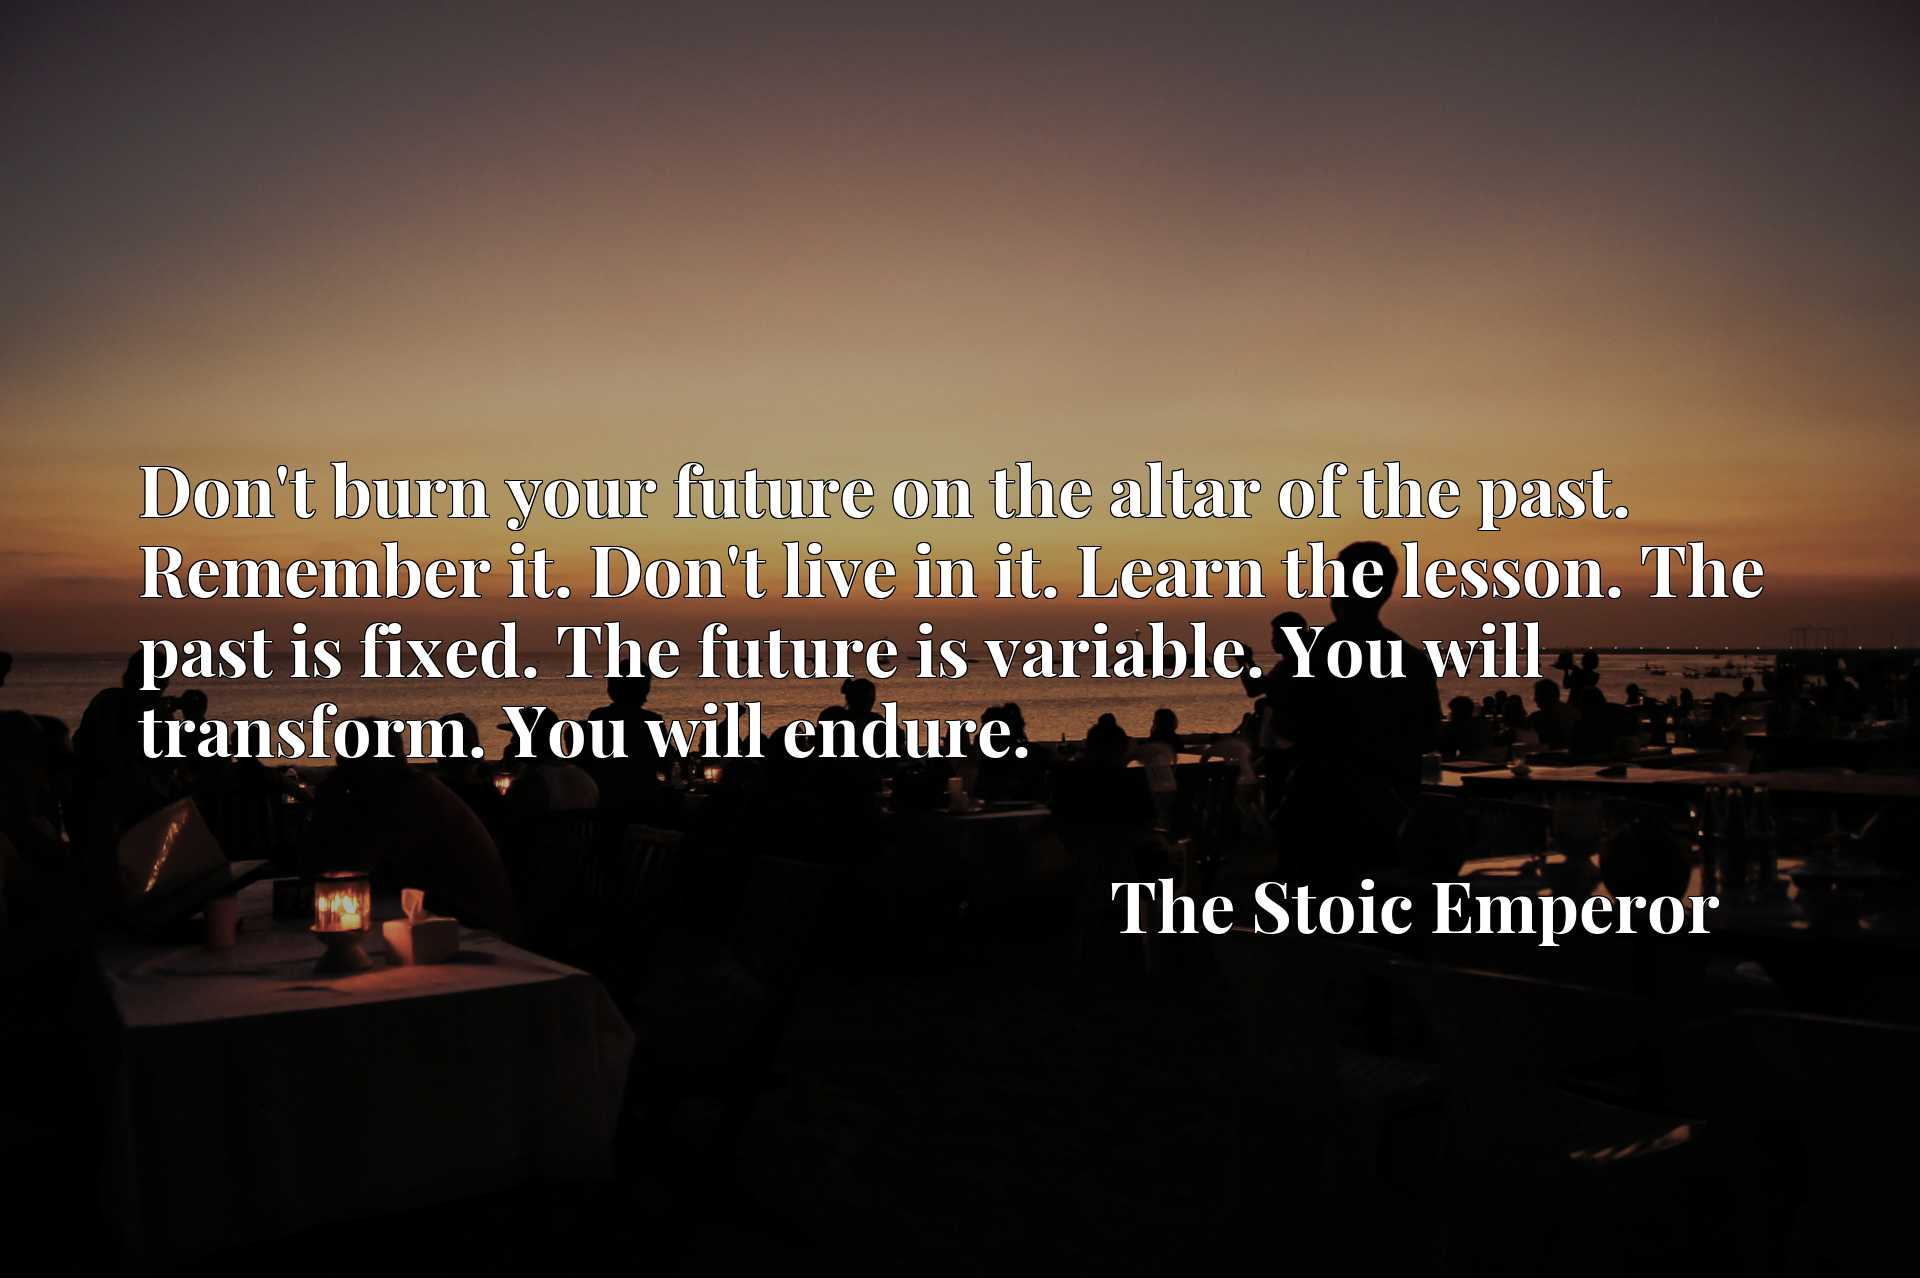 Don't burn your future on the altar of the past. Remember it. Don't live in it. Learn the lesson. The past is fixed. The future is variable. You will transform. You will endure.